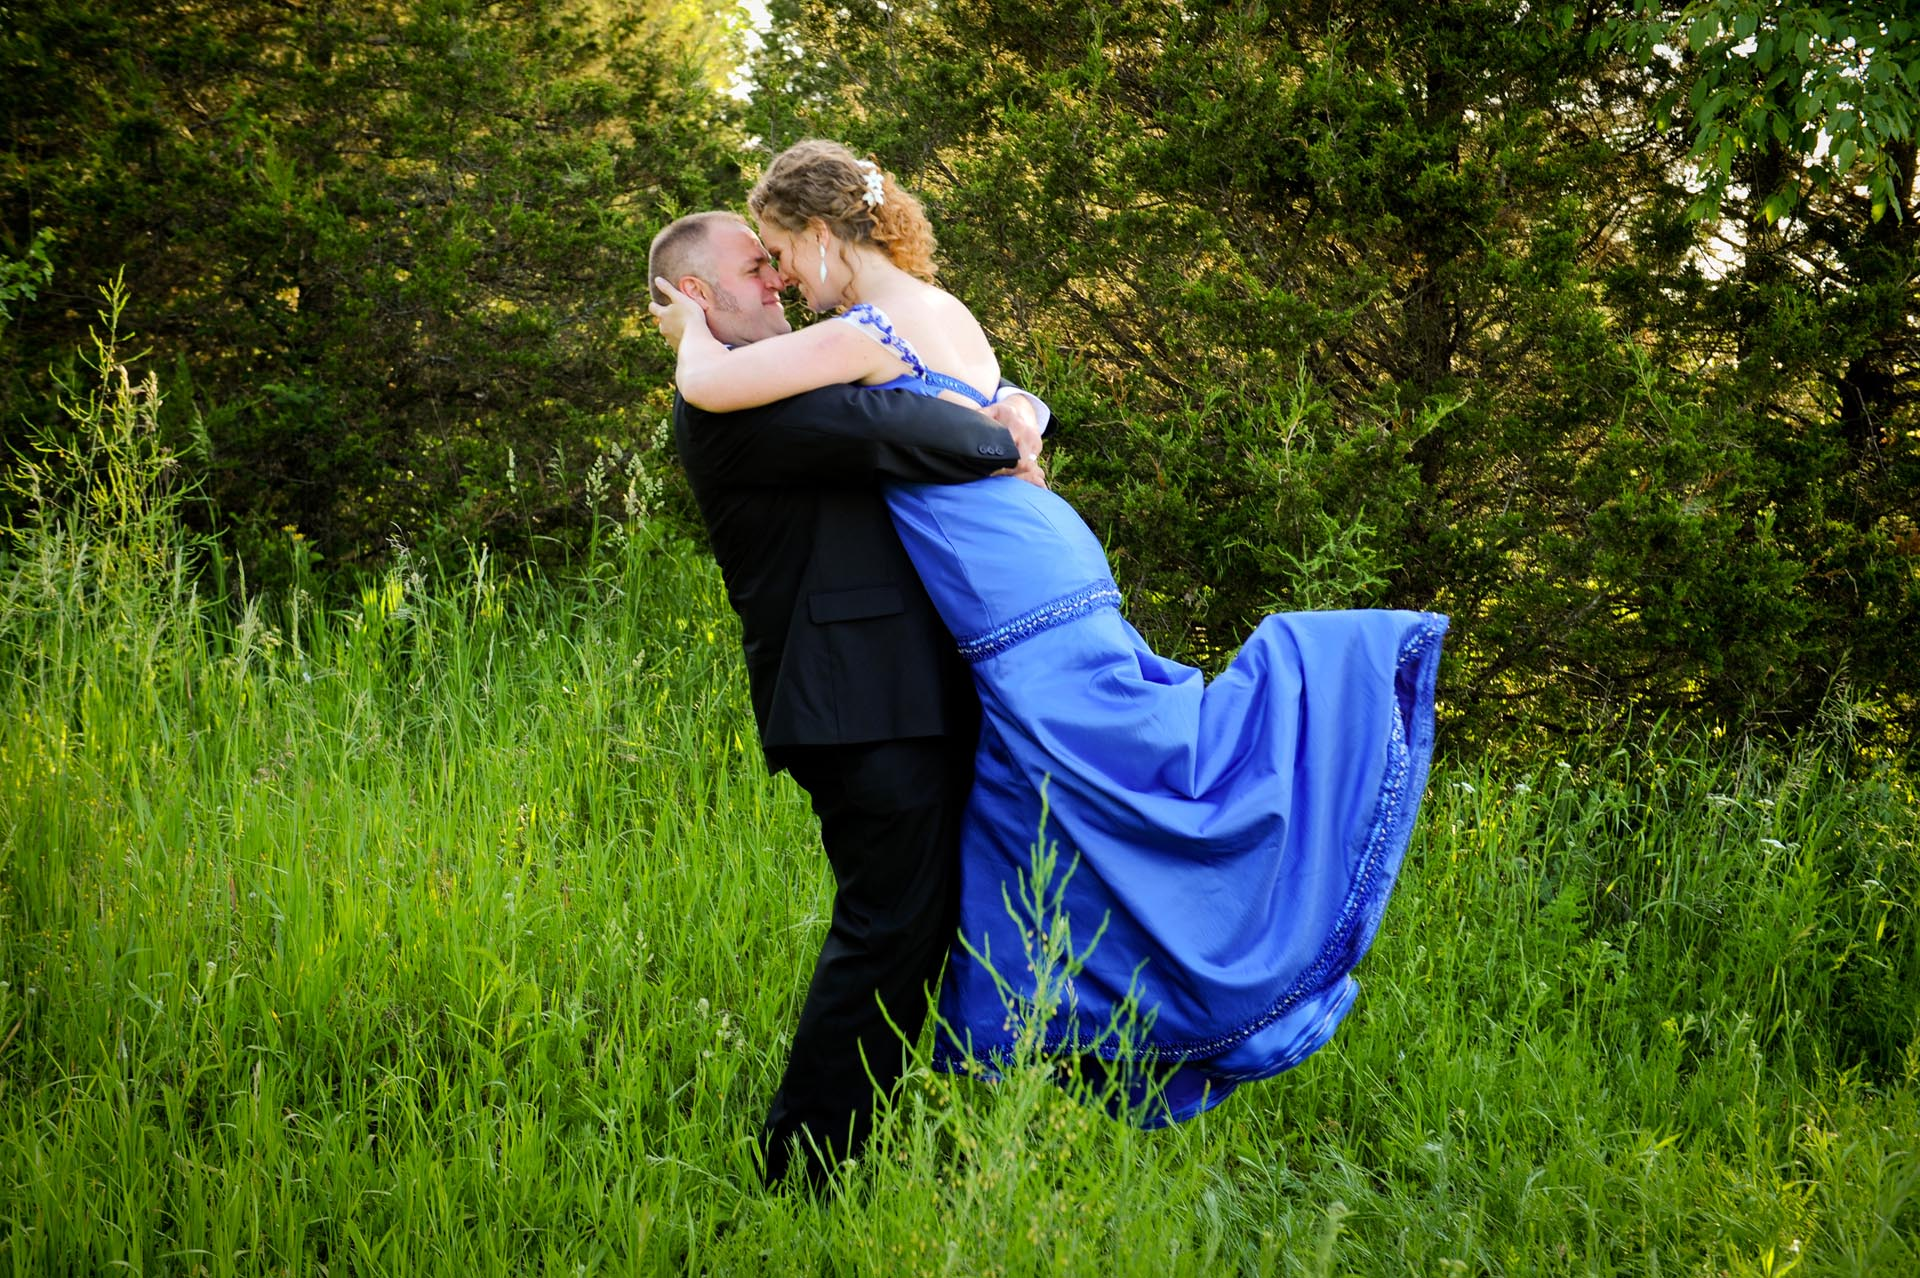 The budget conscience brides featuring contemporary and Pinterest worthy wedding photographs in Michigan highlights moving away from Pinterest to creating your unique wedding photography showing the bride and groom kissing in a field after their wedding at the Michigan wedding that emphasized photojournalist's moments and kept the bride on her budget.